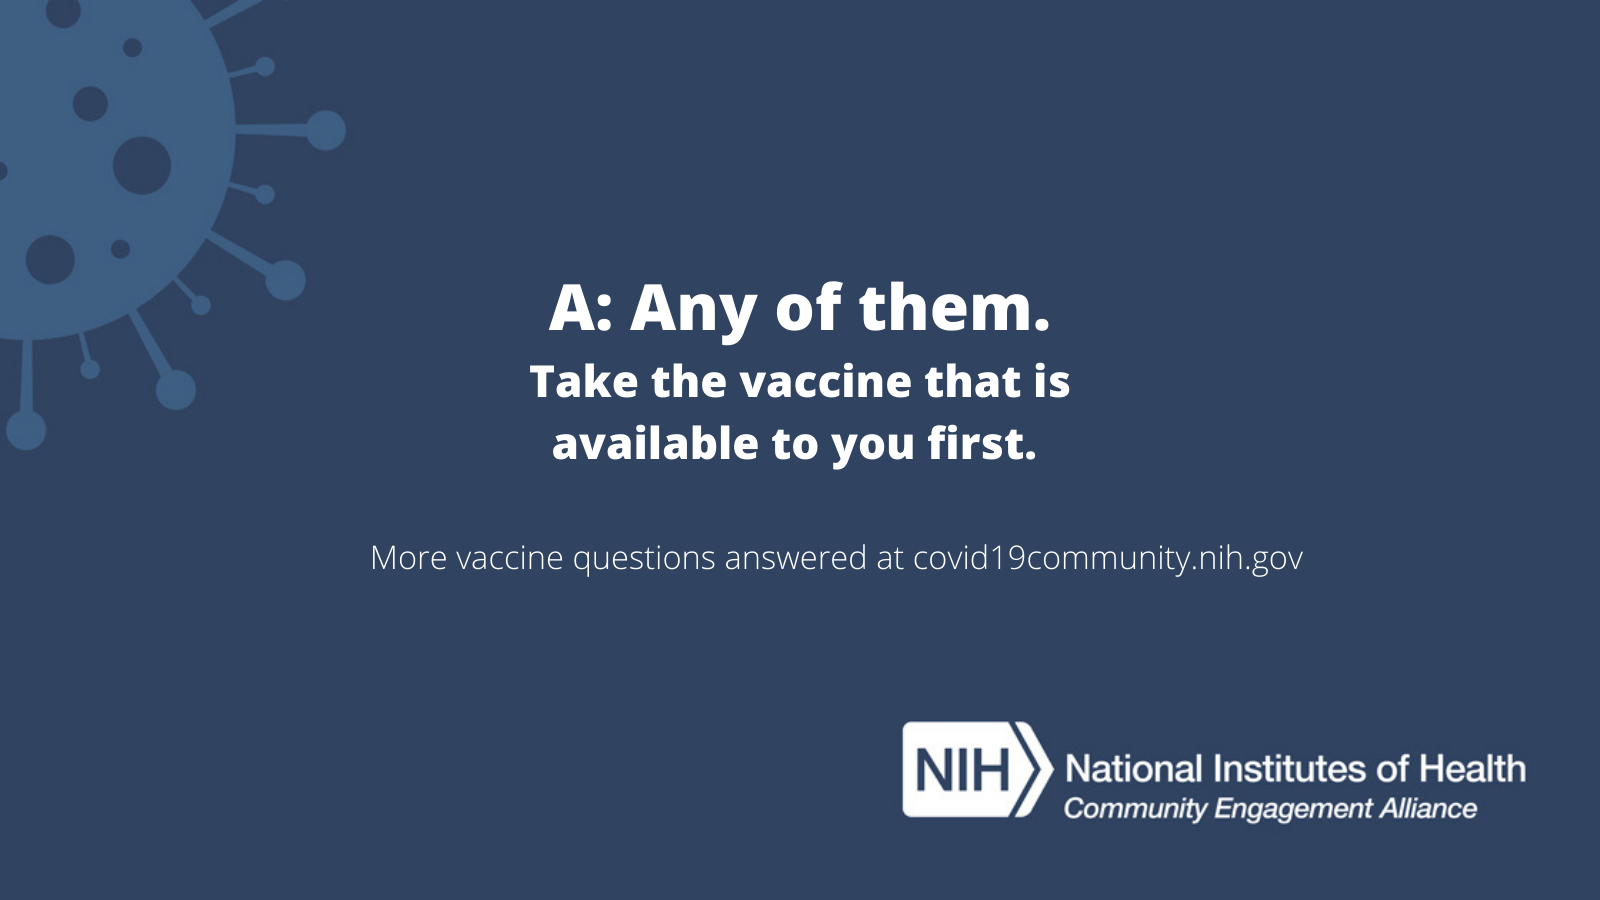 A: Any of them. Take the vaccine that is available to you first. More vaccine questions answered at covid19community.nih.gov